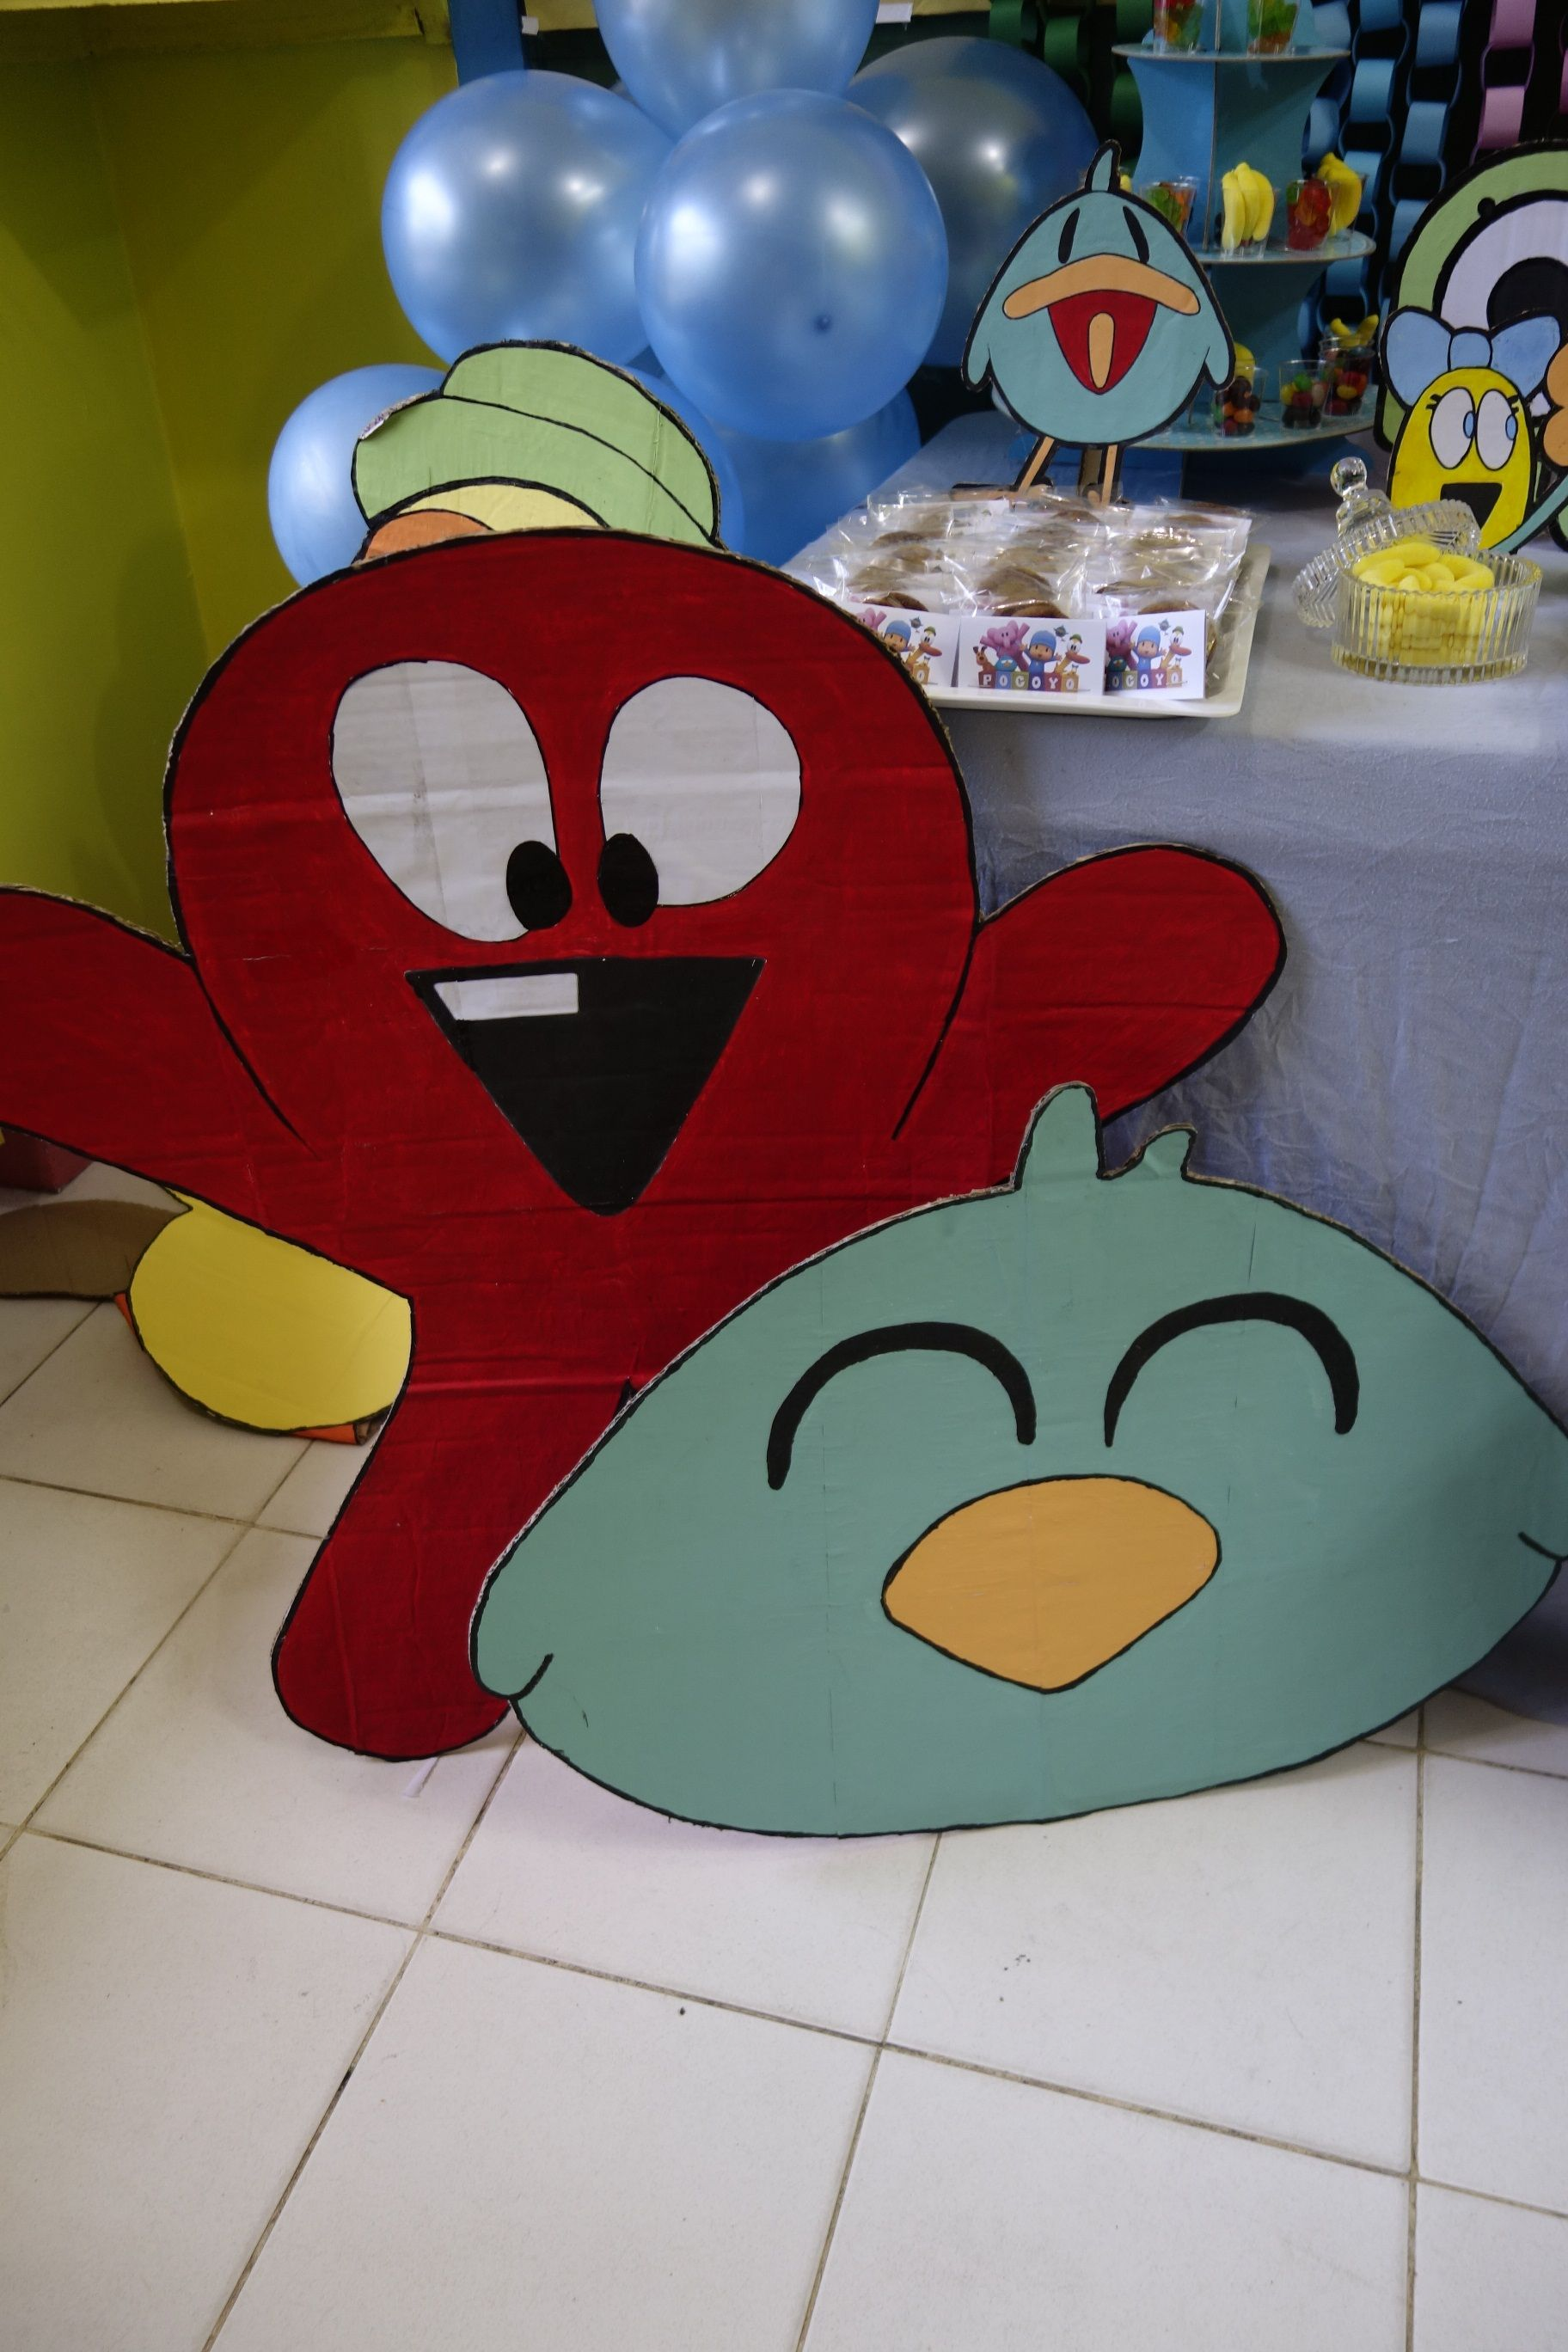 Octopus and Sleepy Bird (with Pato that I can't make stand up)... hahahaha